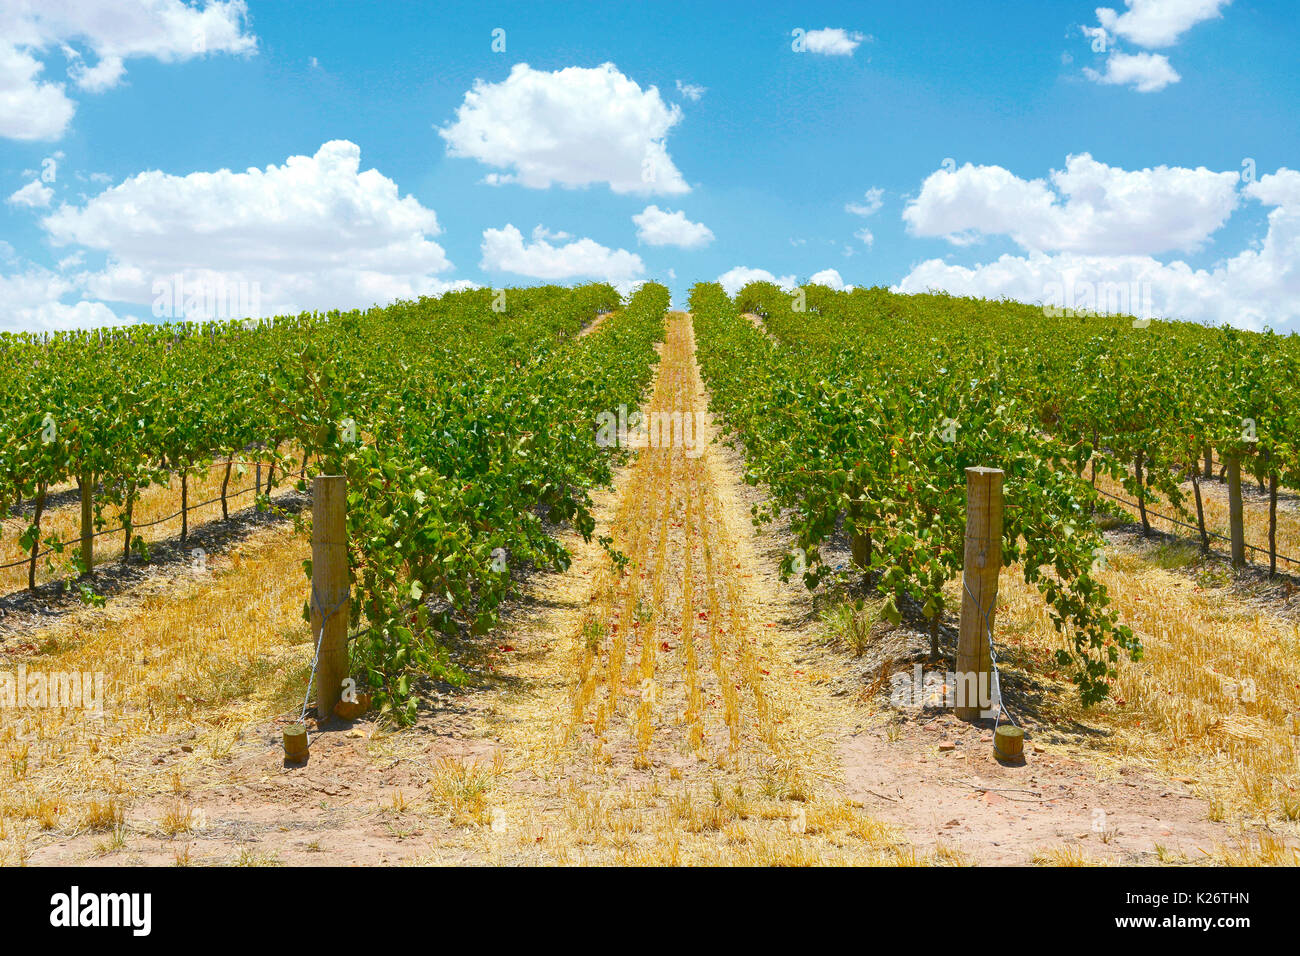 Australian wineries rows of grape vines taken on a bright and sunny day. Stock Photo